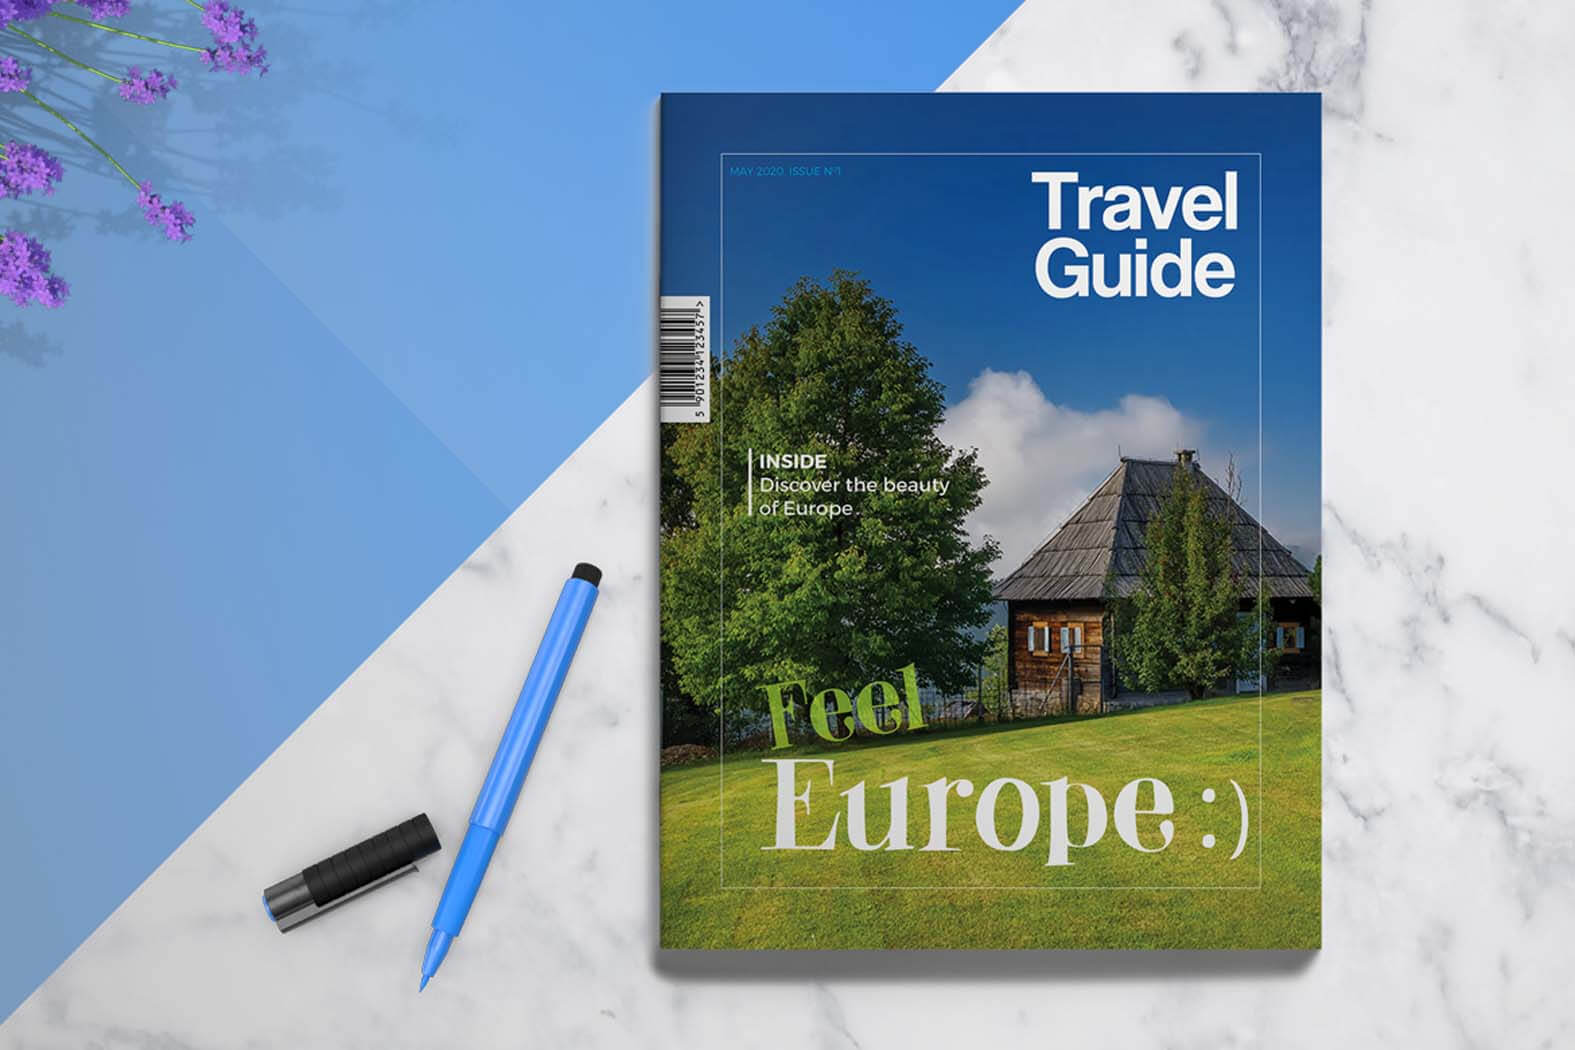 Travel Guide | Template 4 Print In Travel Guide Brochure Template